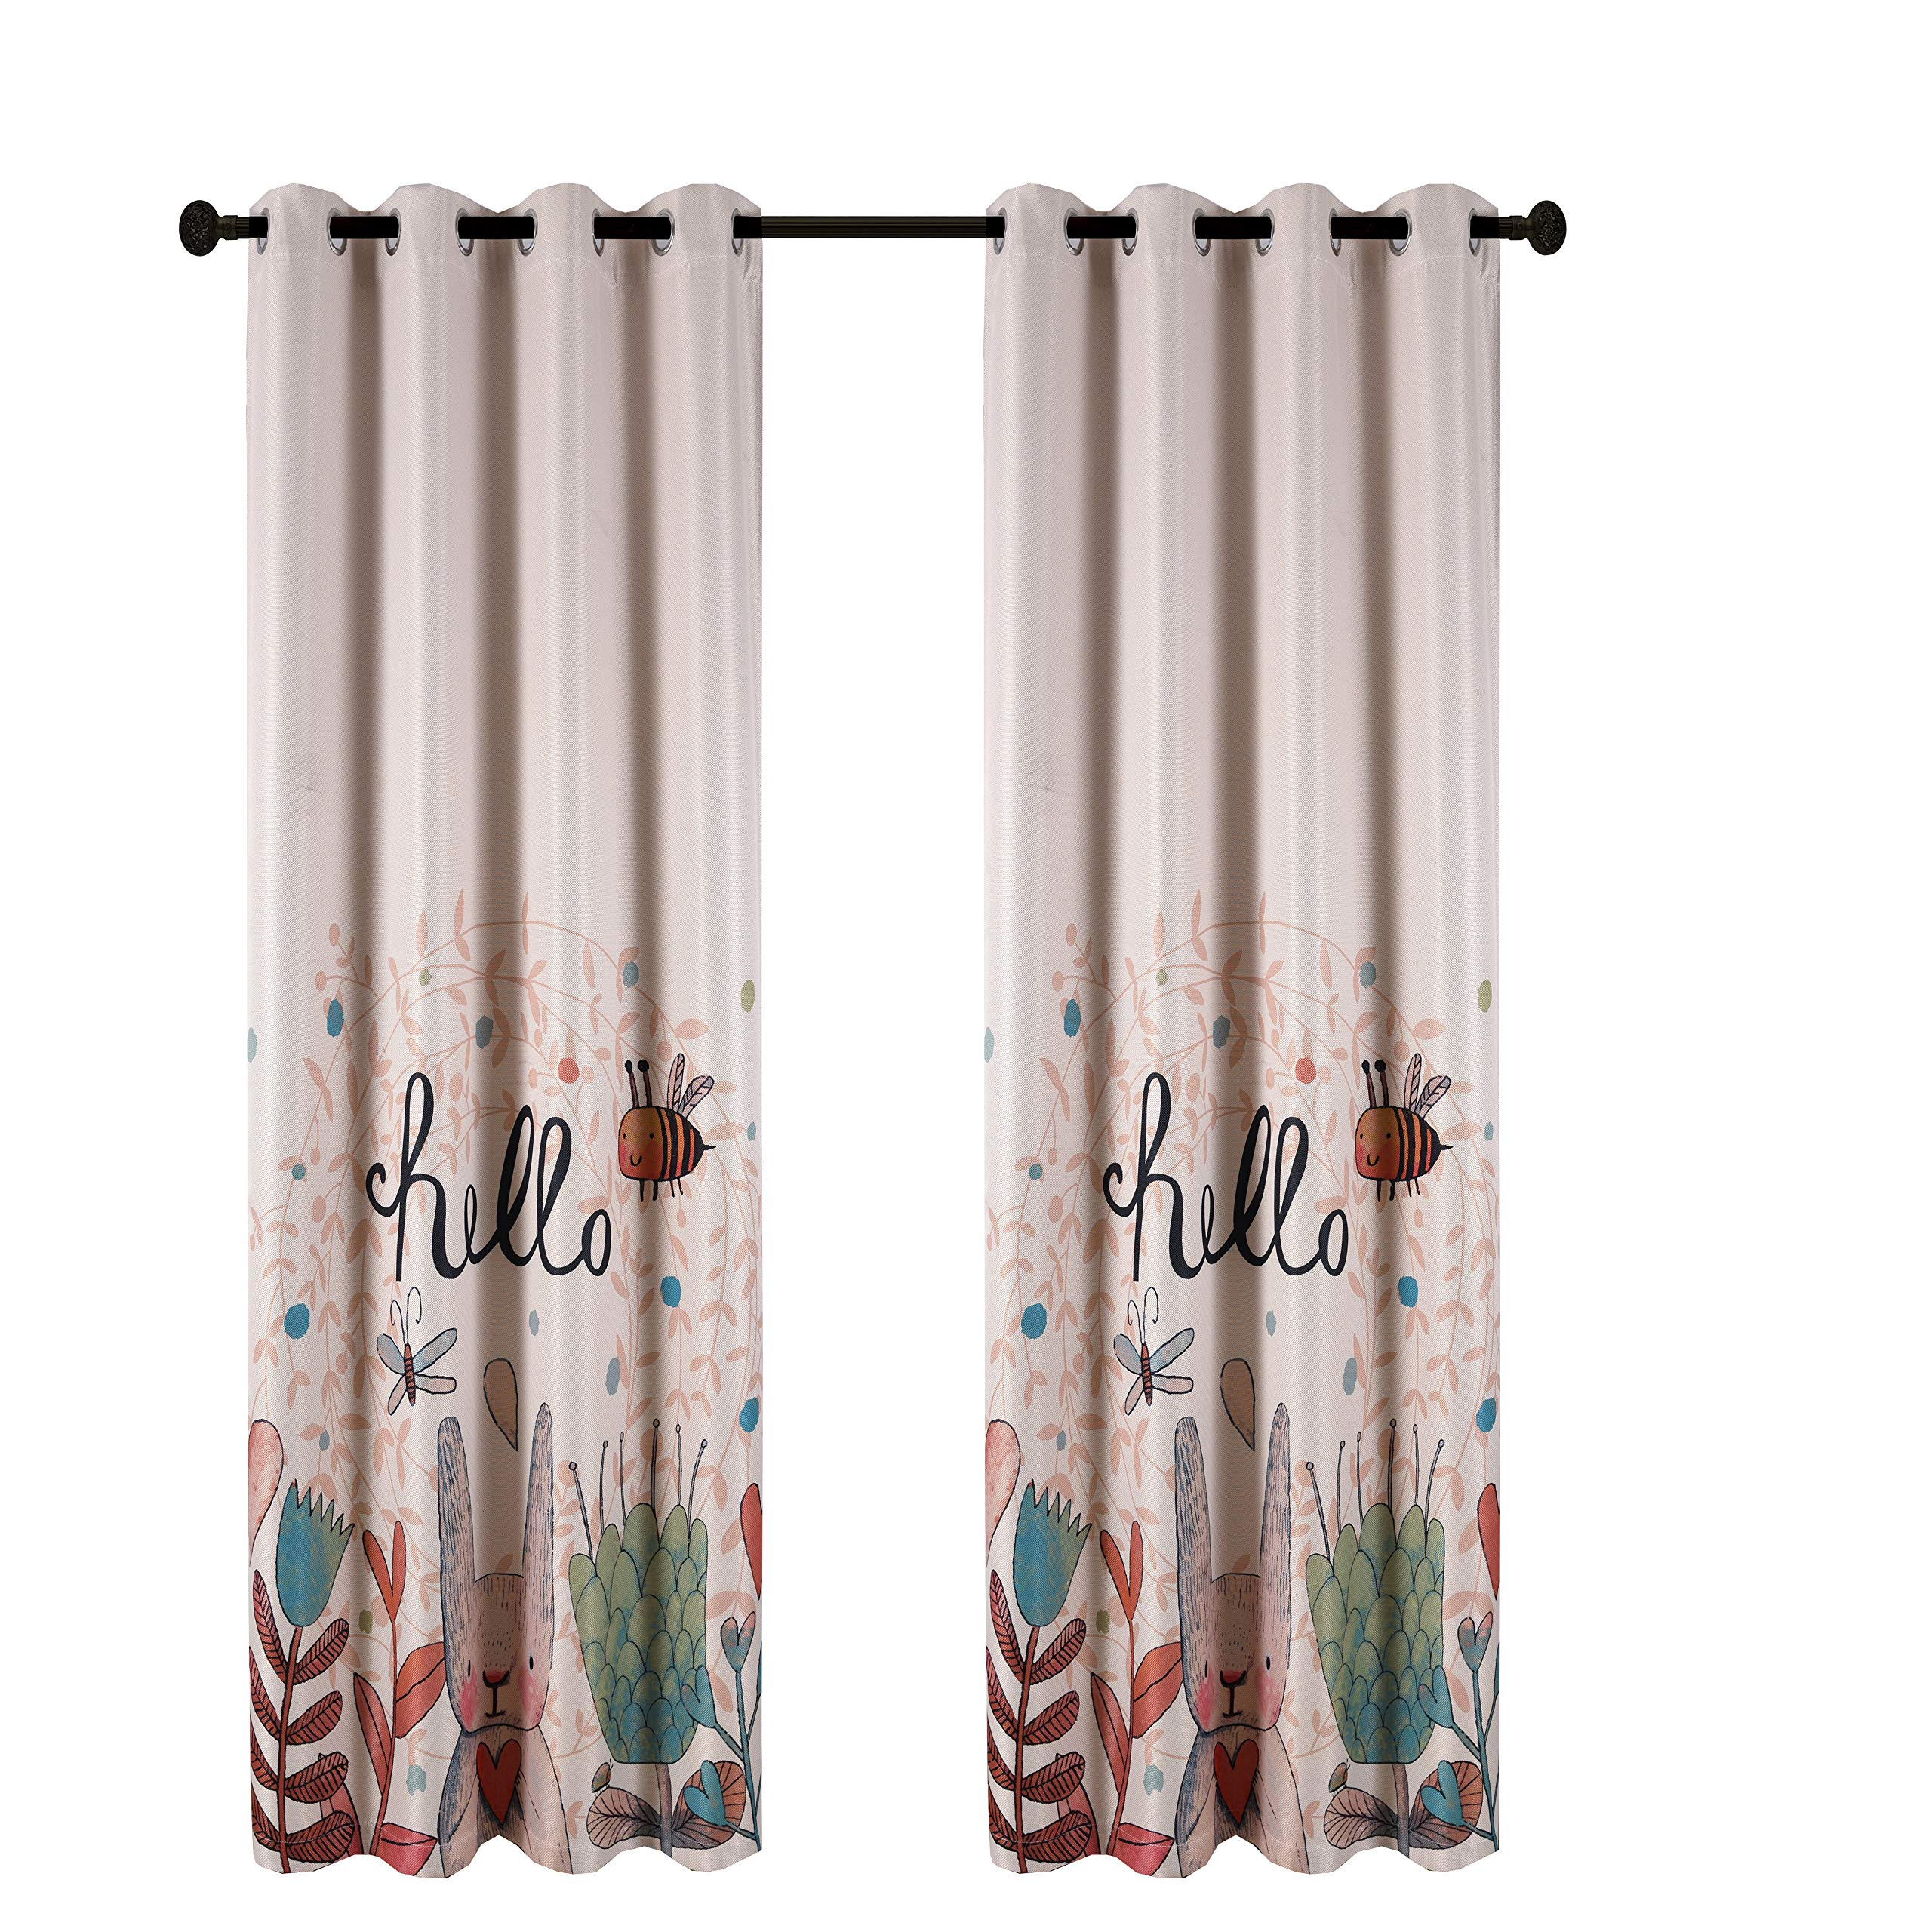 Taisier Home Cartoon Theme Baby Curtians for Nursery Girls,84 Inch Length for Childrens Bedroom Bunny Bee Dragonfly with Natural Style Design,1 Panel Set Ring Top Style Lovely Curtain Drapes by Taisier Home